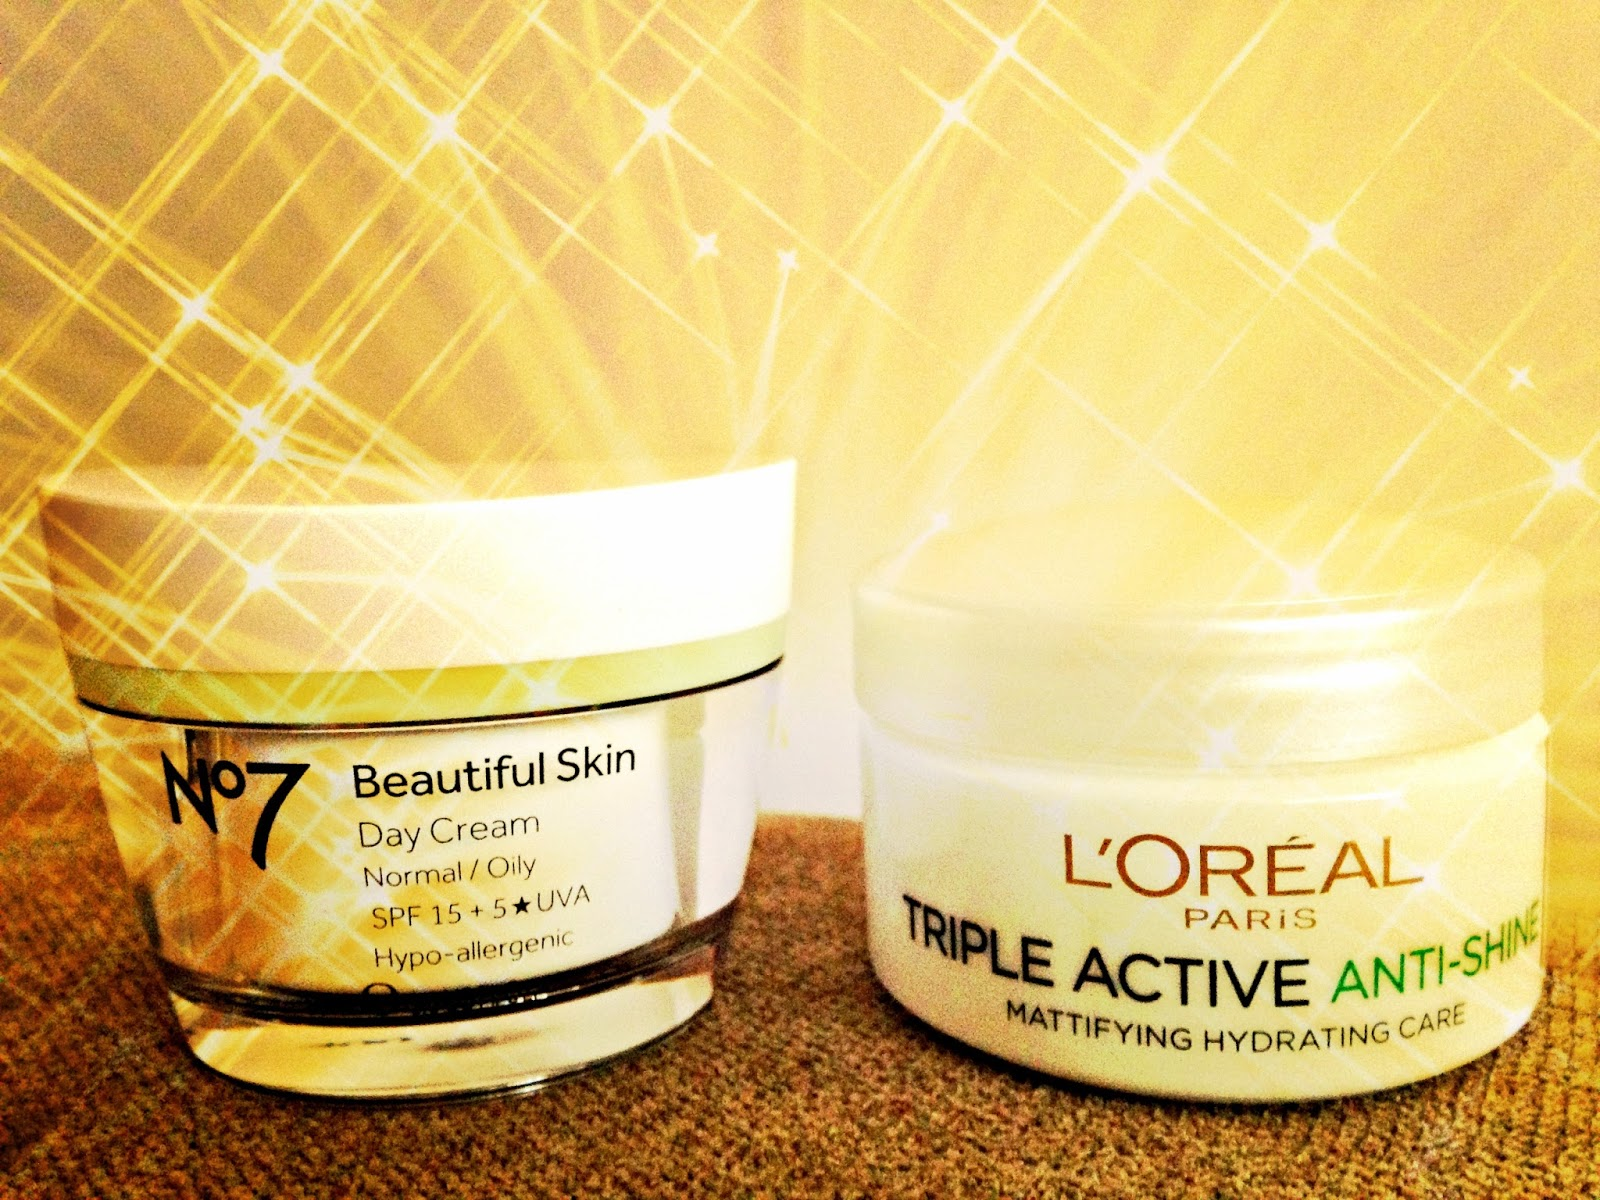 L'Oreal_Triple_Active_Anti-Shine_Boots_no7_mattifying_pore refining